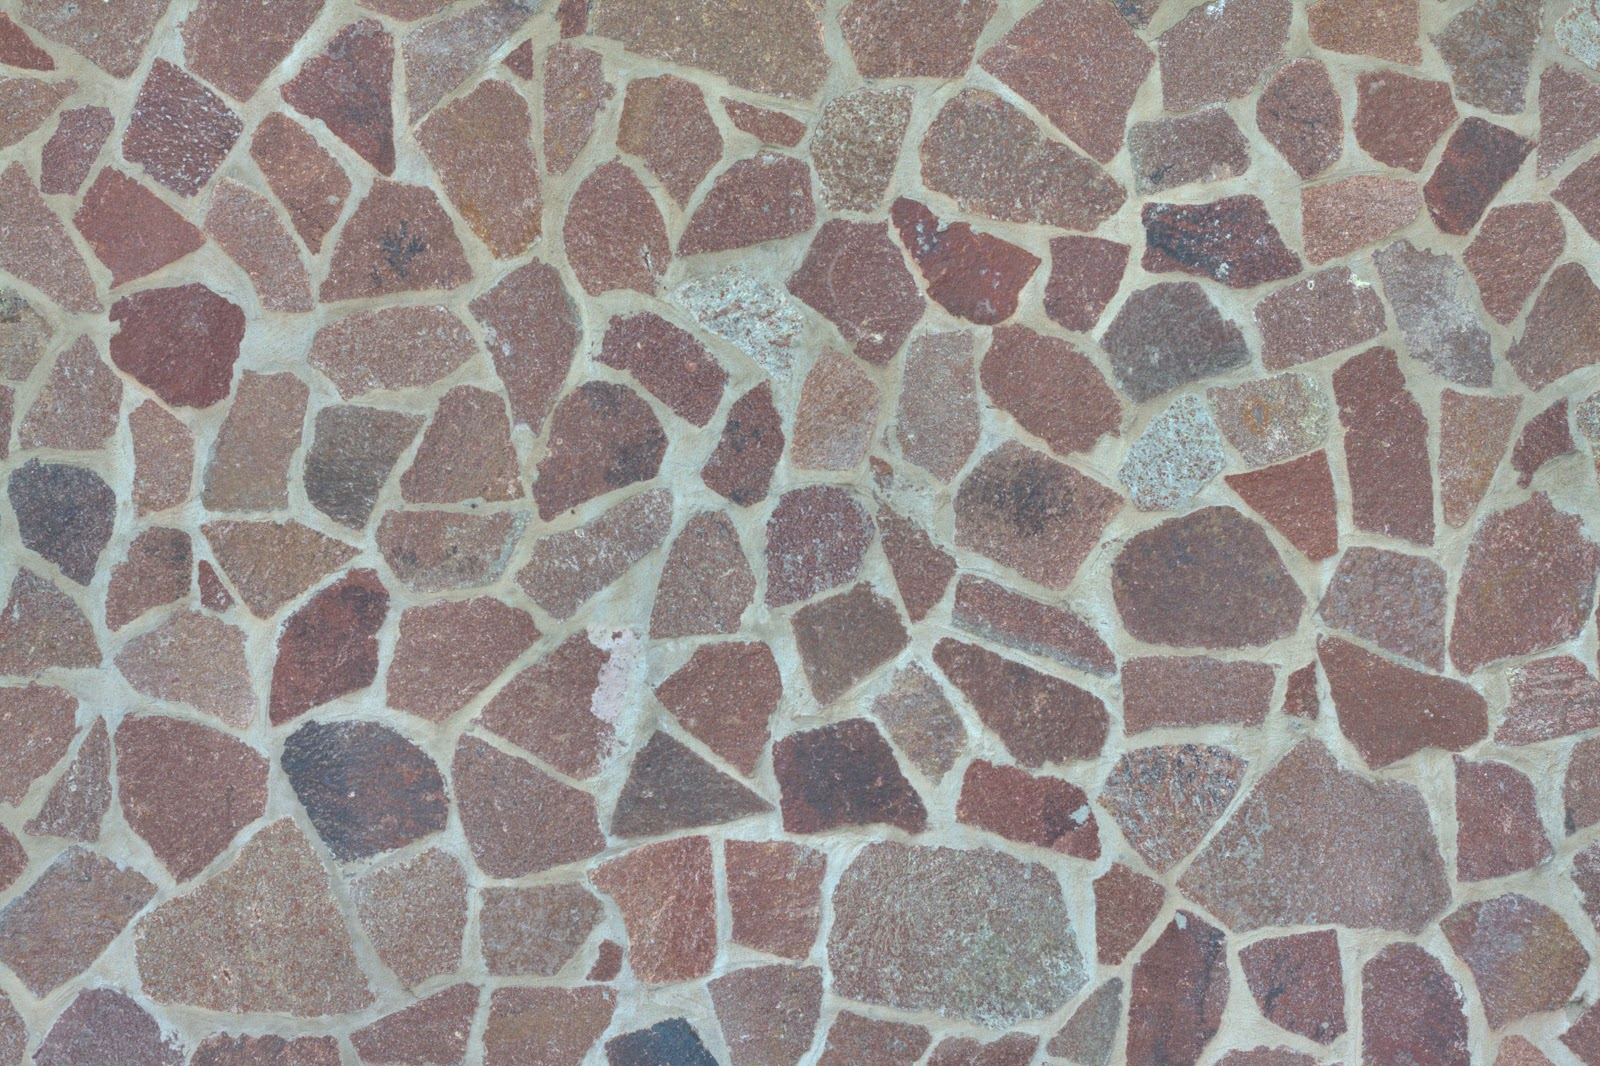 Stone Giraffe Floor Tiles Texture 4770x3178 High Resolution Seamless Textures